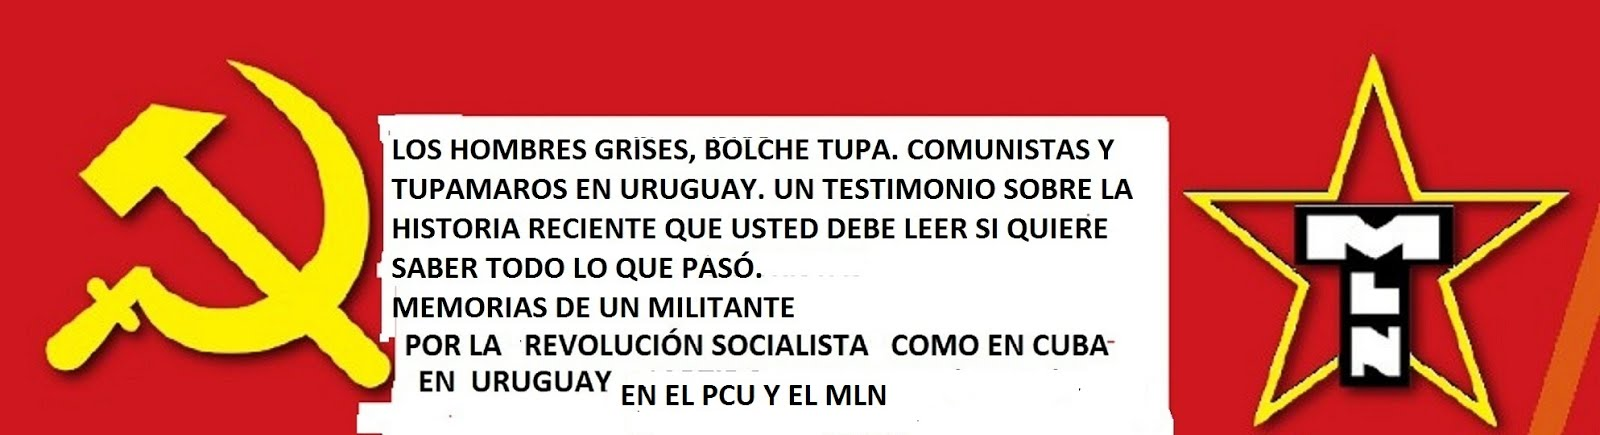 LOS HOMBRES GRISES (BOLCHE TUPA )  : COMUNISTAS Y TUPAMAROS EN URUGUAY